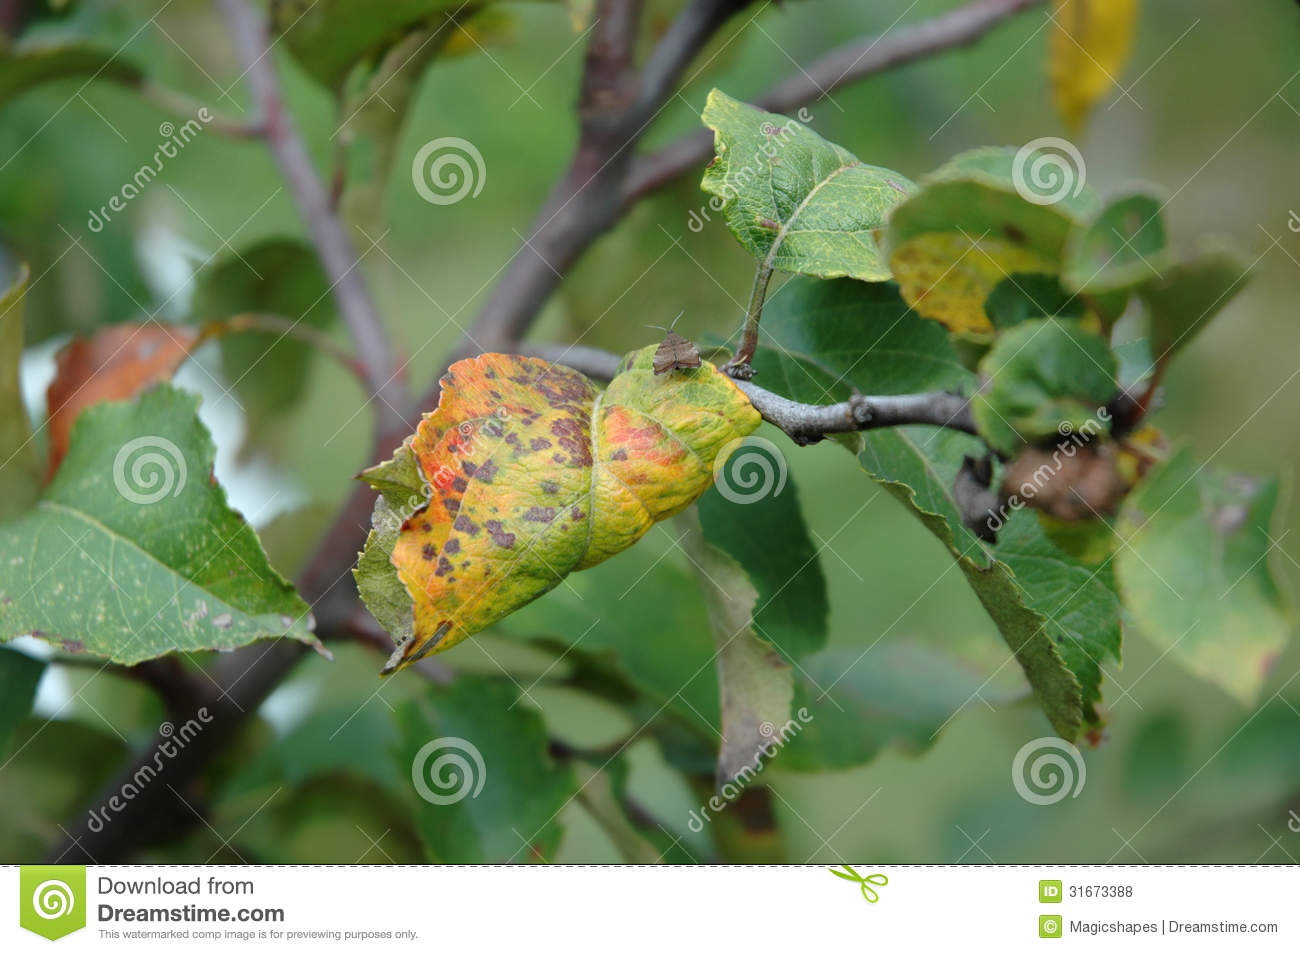 Plum Rust Disease On Leaves Royalty Free Stock Photography.